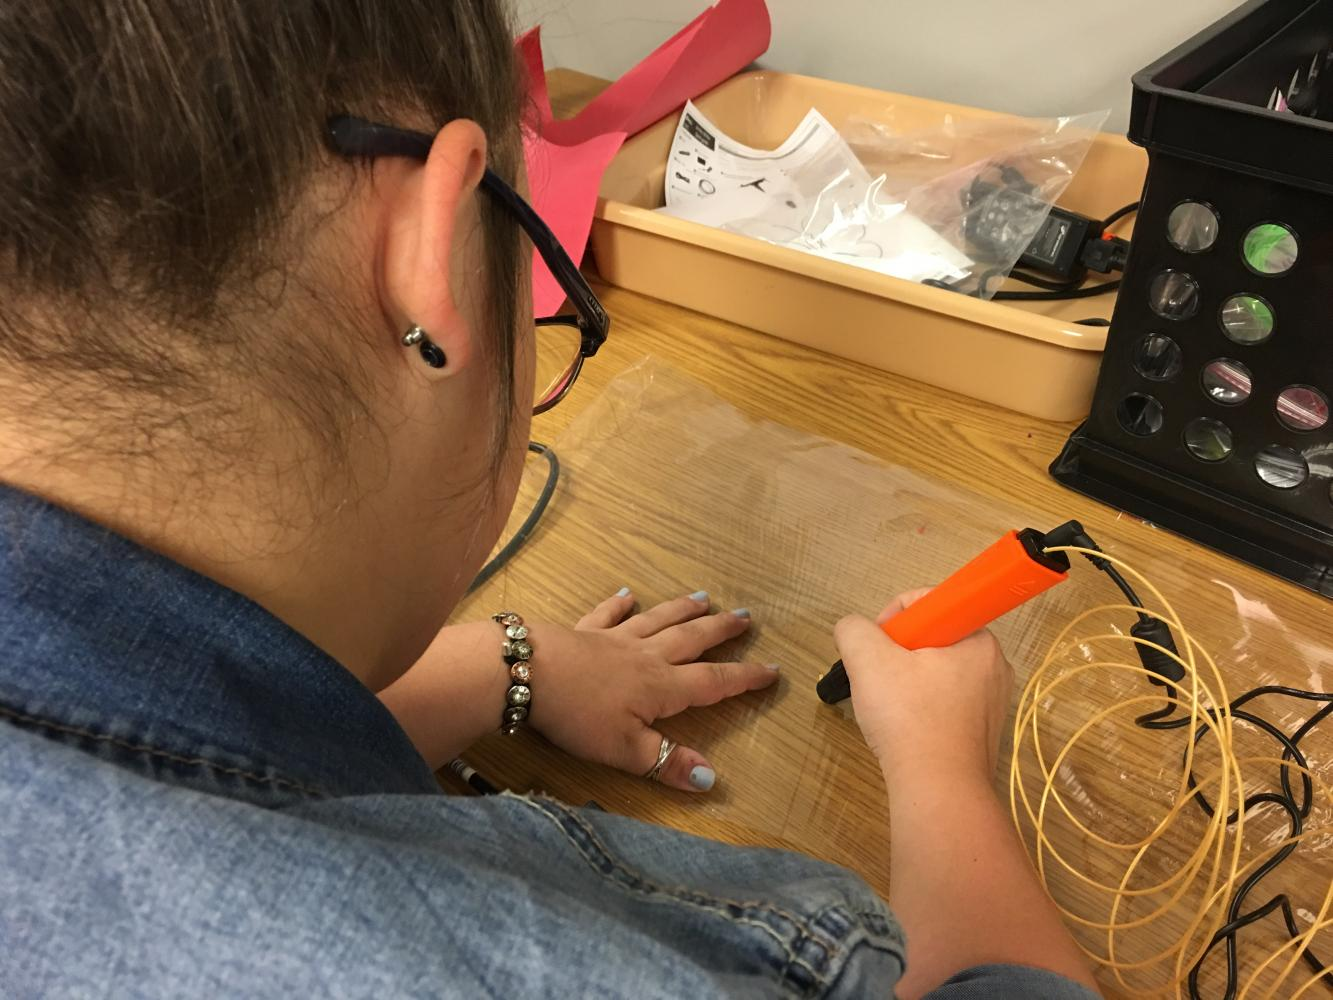 Senior Ali Beasley works with the new 3D pen in the